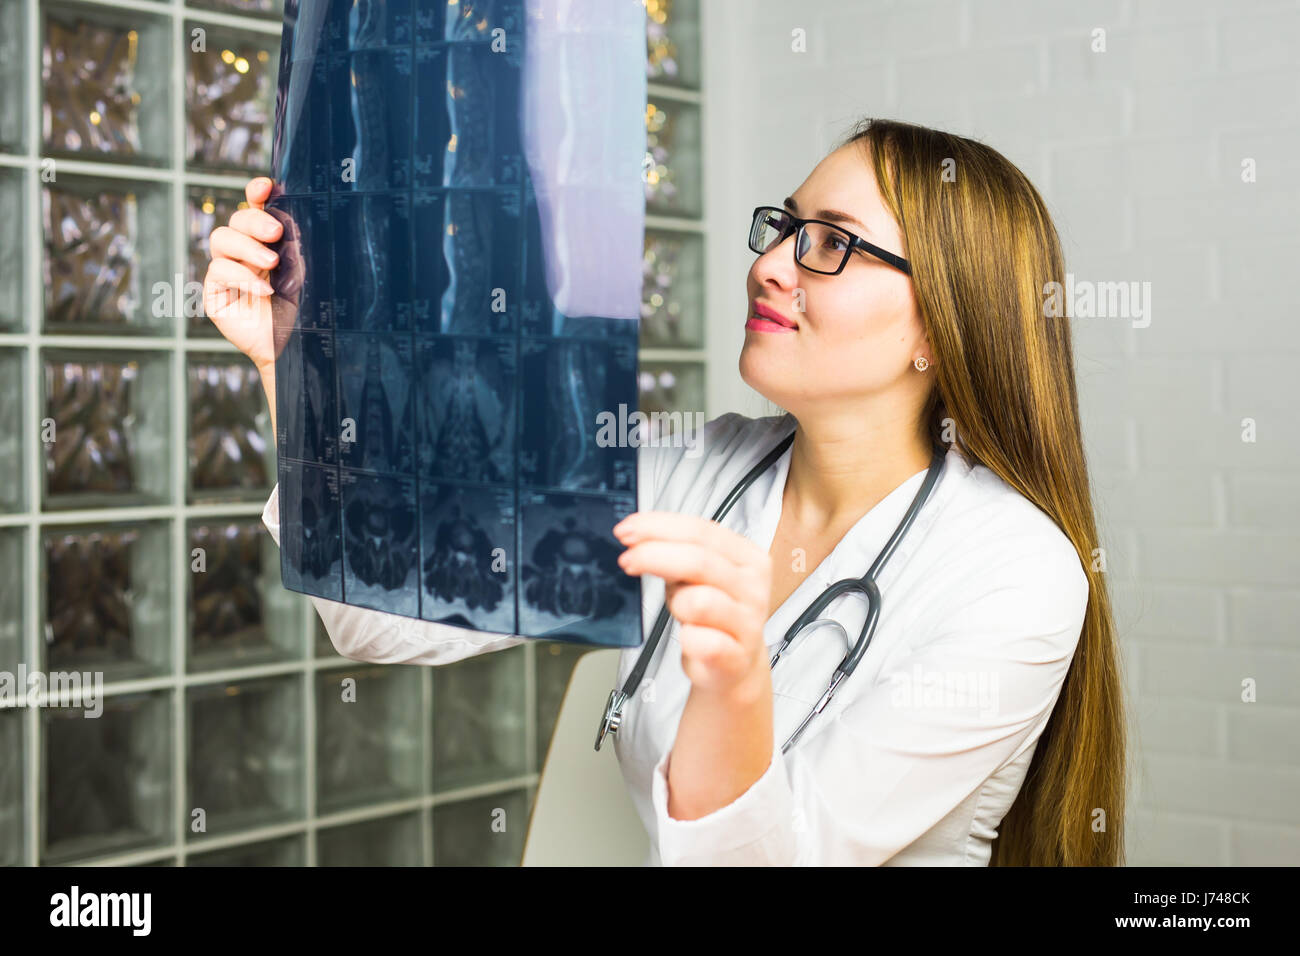 Portrait of intellectual woman healthcare personnel with white labcoat, looking at full body x-ray radiographic - Stock Image